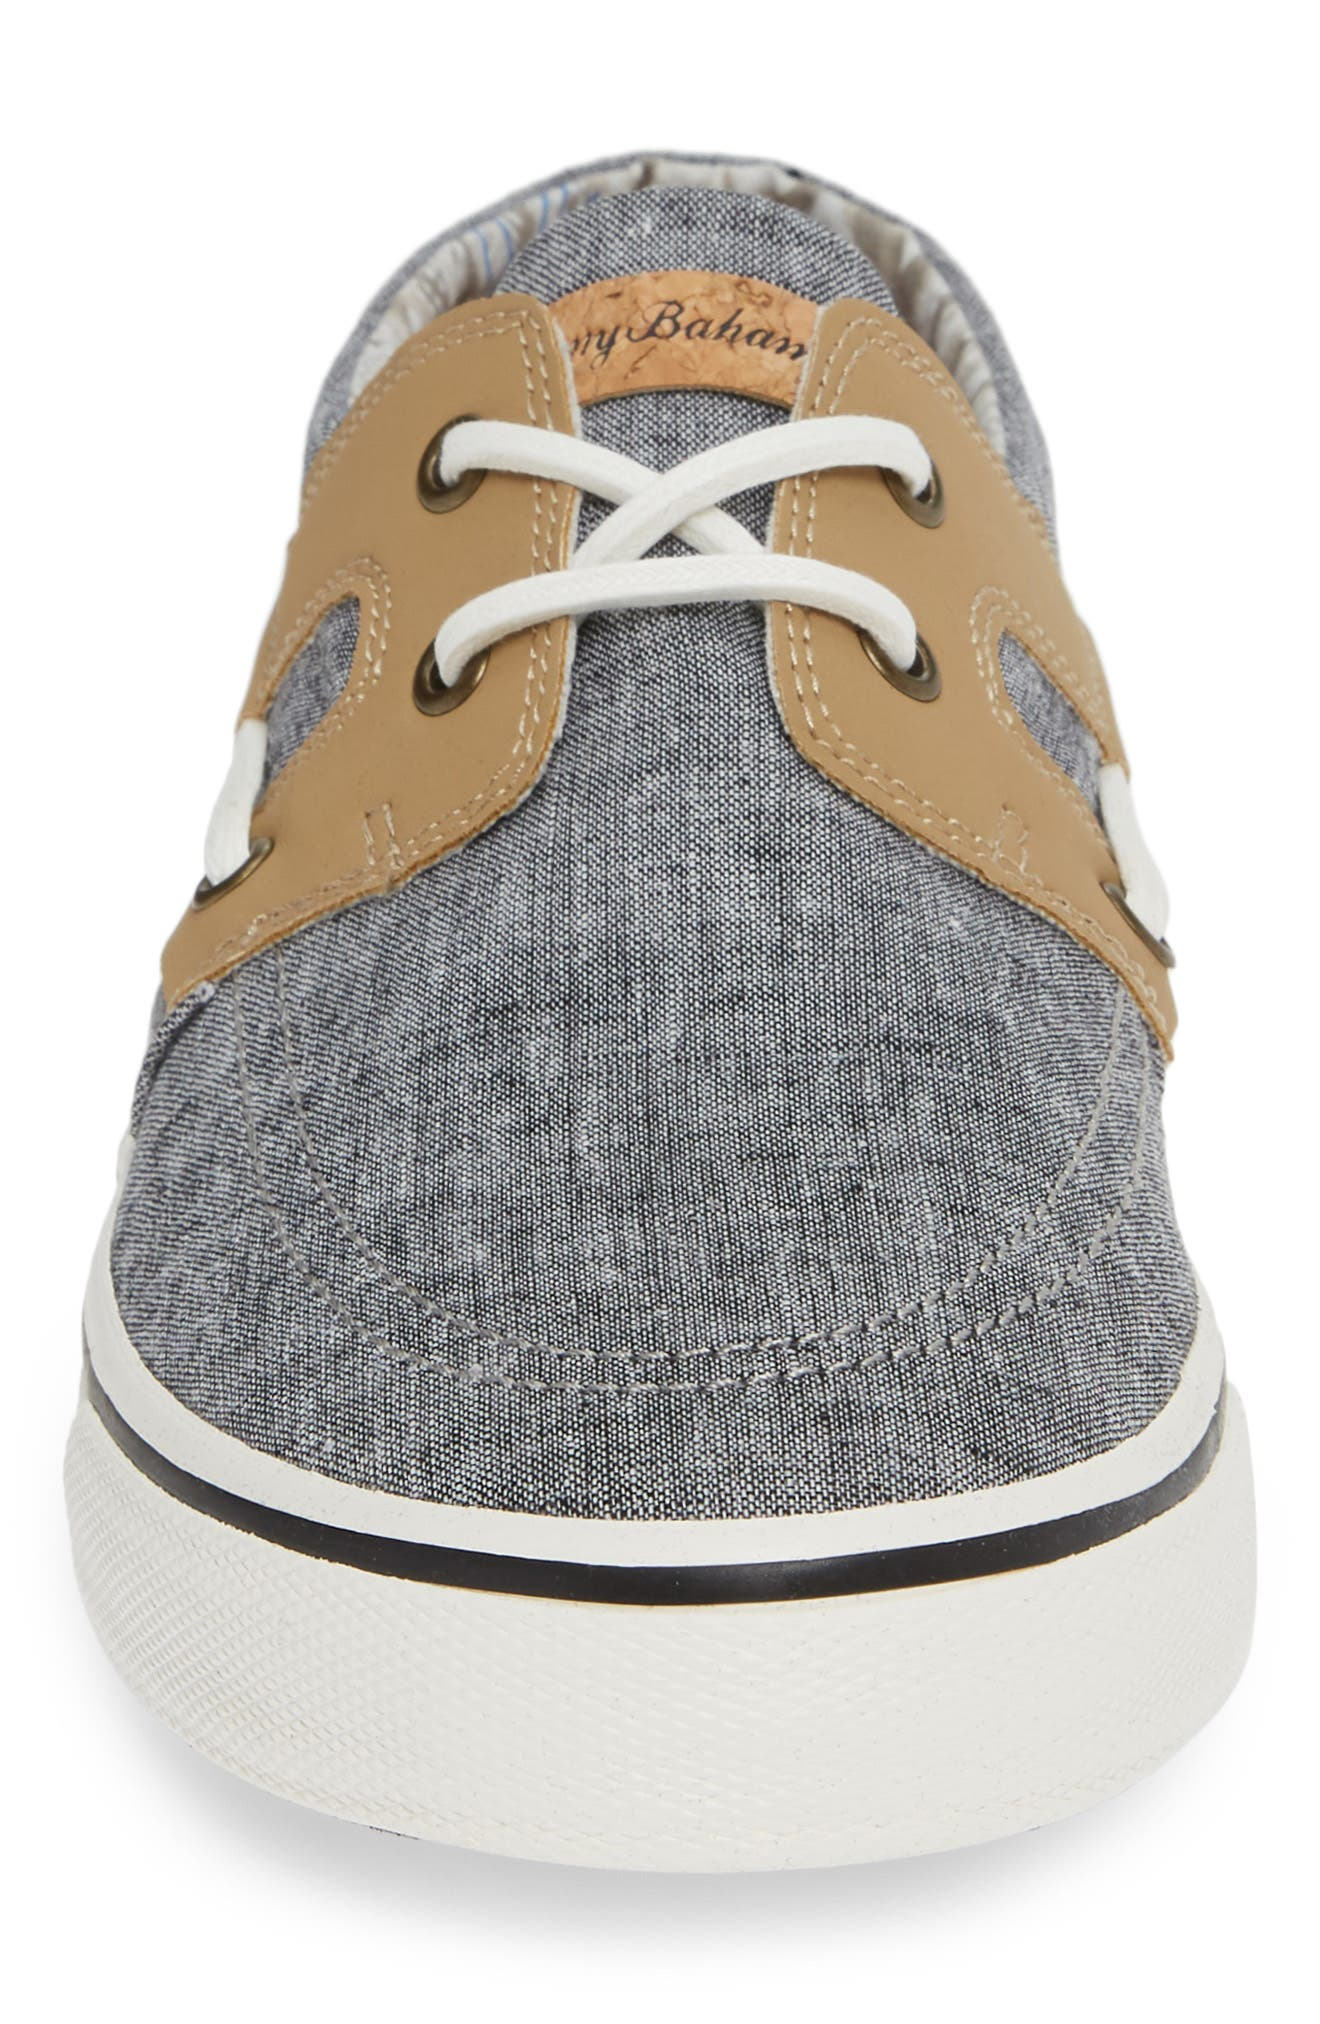 TOMMY BAHAMA, Stripe Breaker Sneaker, Alternate thumbnail 4, color, BLACK CHAMBRAY